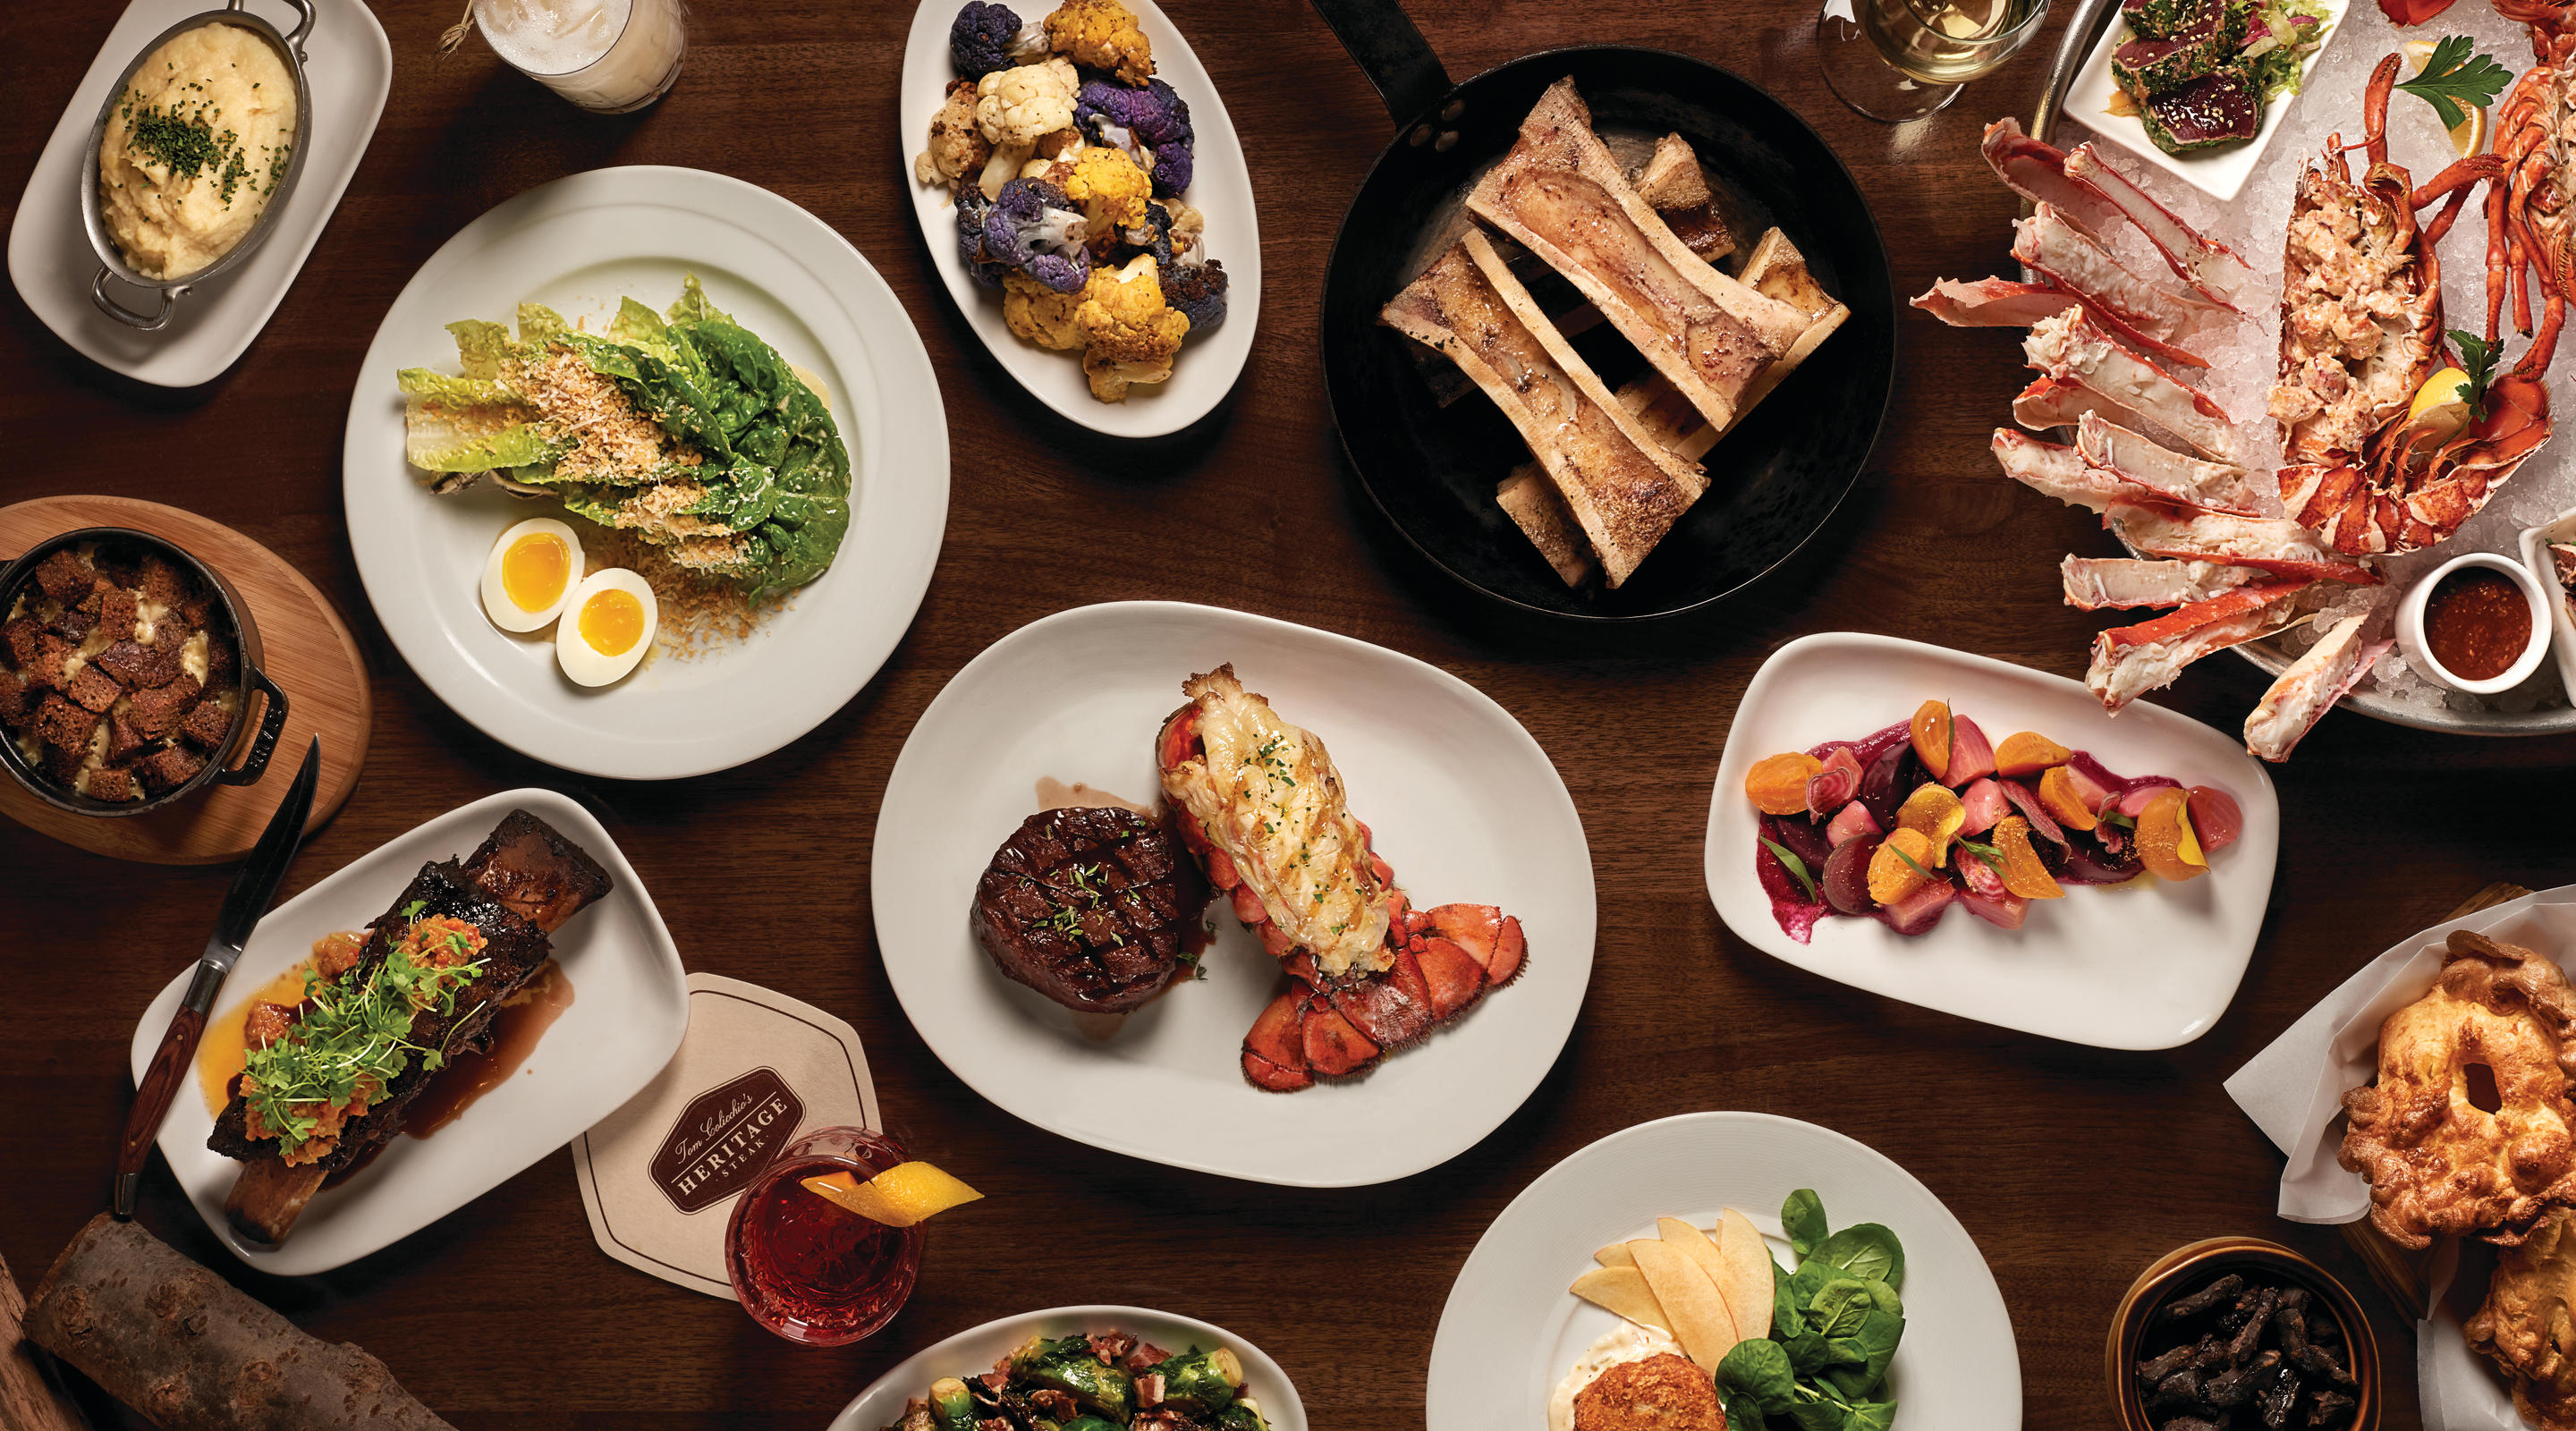 A variety of dishes at Tom Colicchio's Heritage Steak.